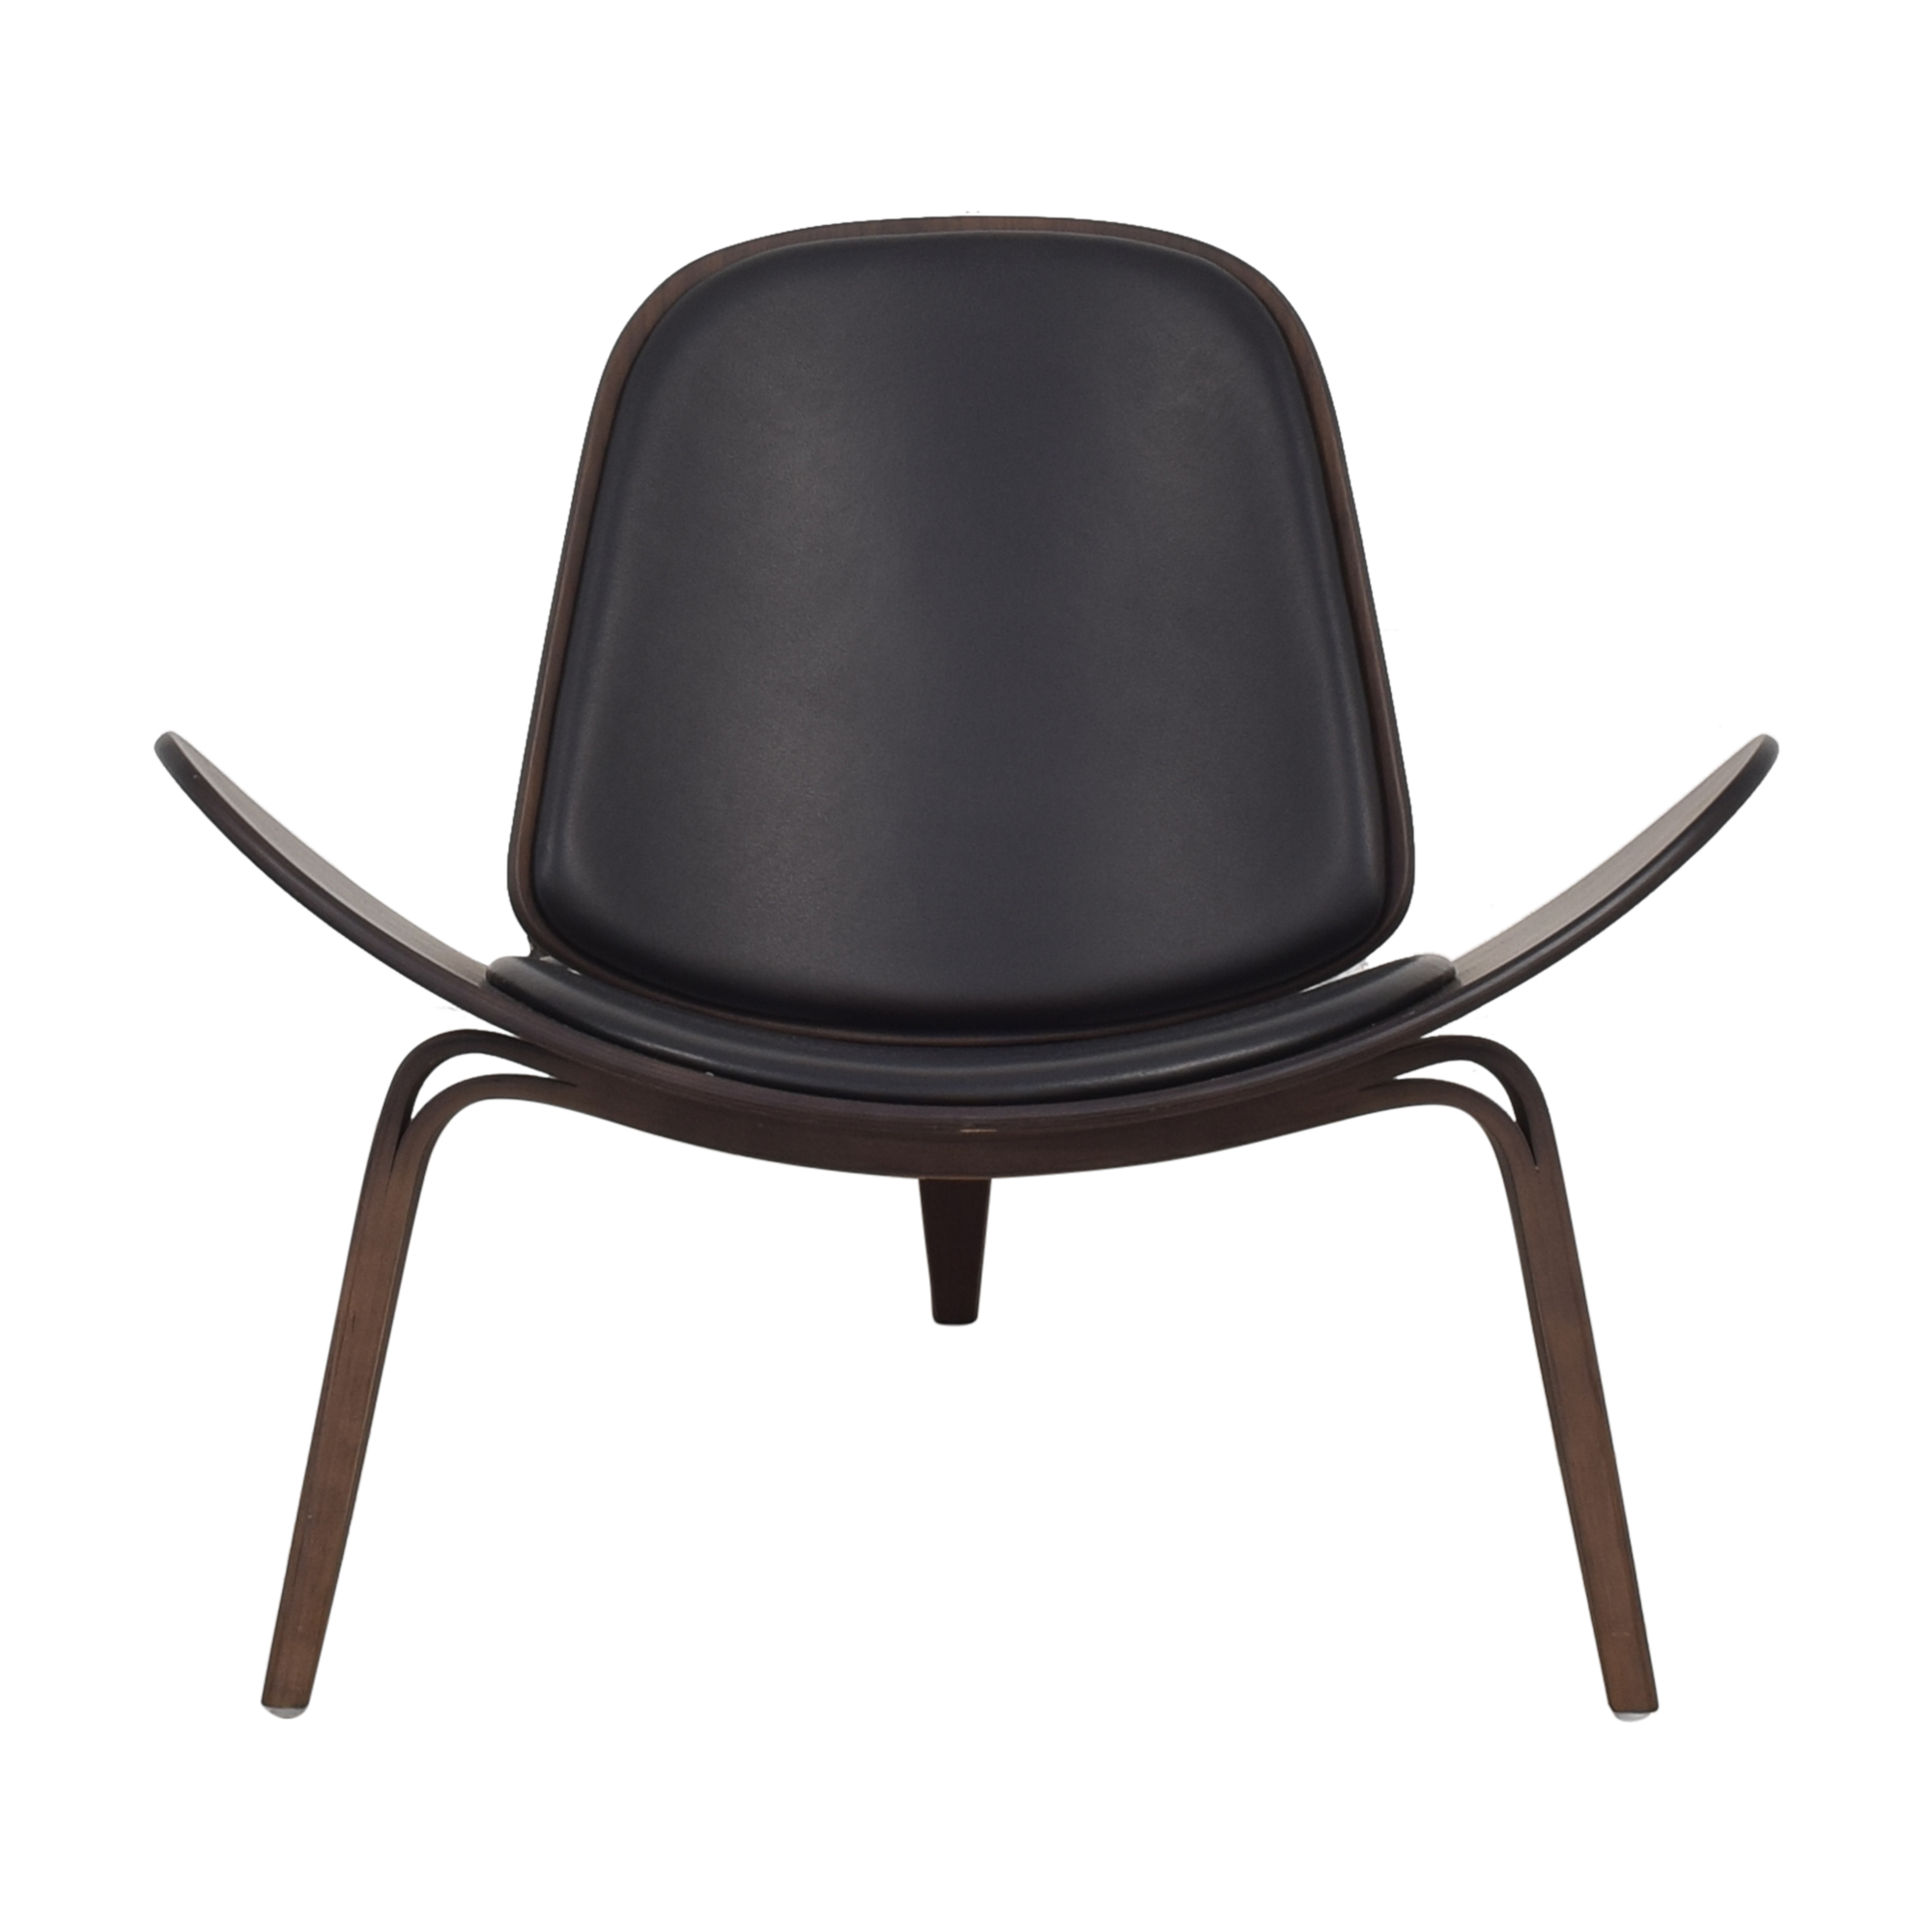 buy Bloomingdale's Jacobsen-Style Shell Lounge Chair Bloomingdale's Chairs